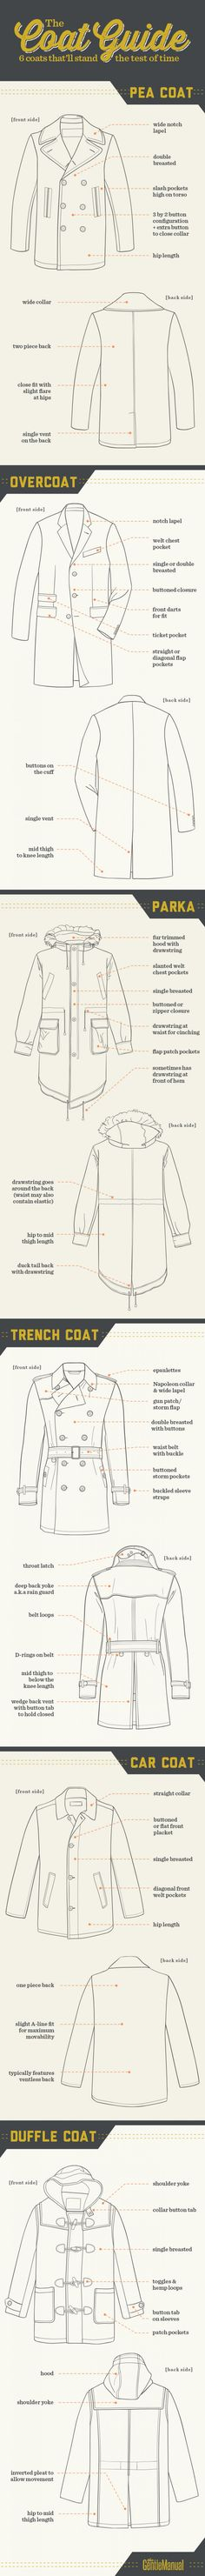 Gentlemen:  #Gentlemen's #fashion ~ The Coat Guide (Infographic).